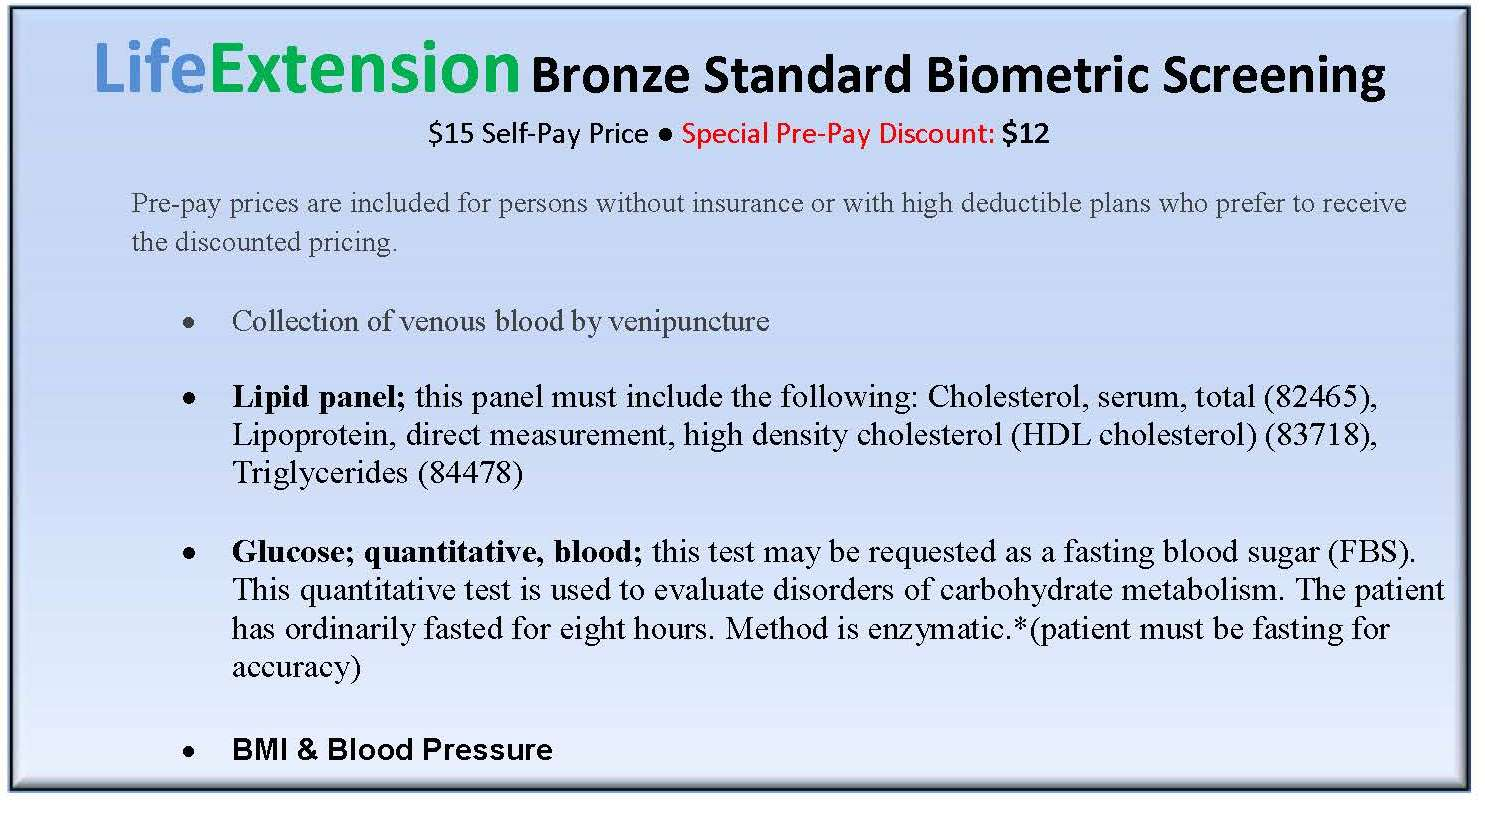 Biometric Bronze